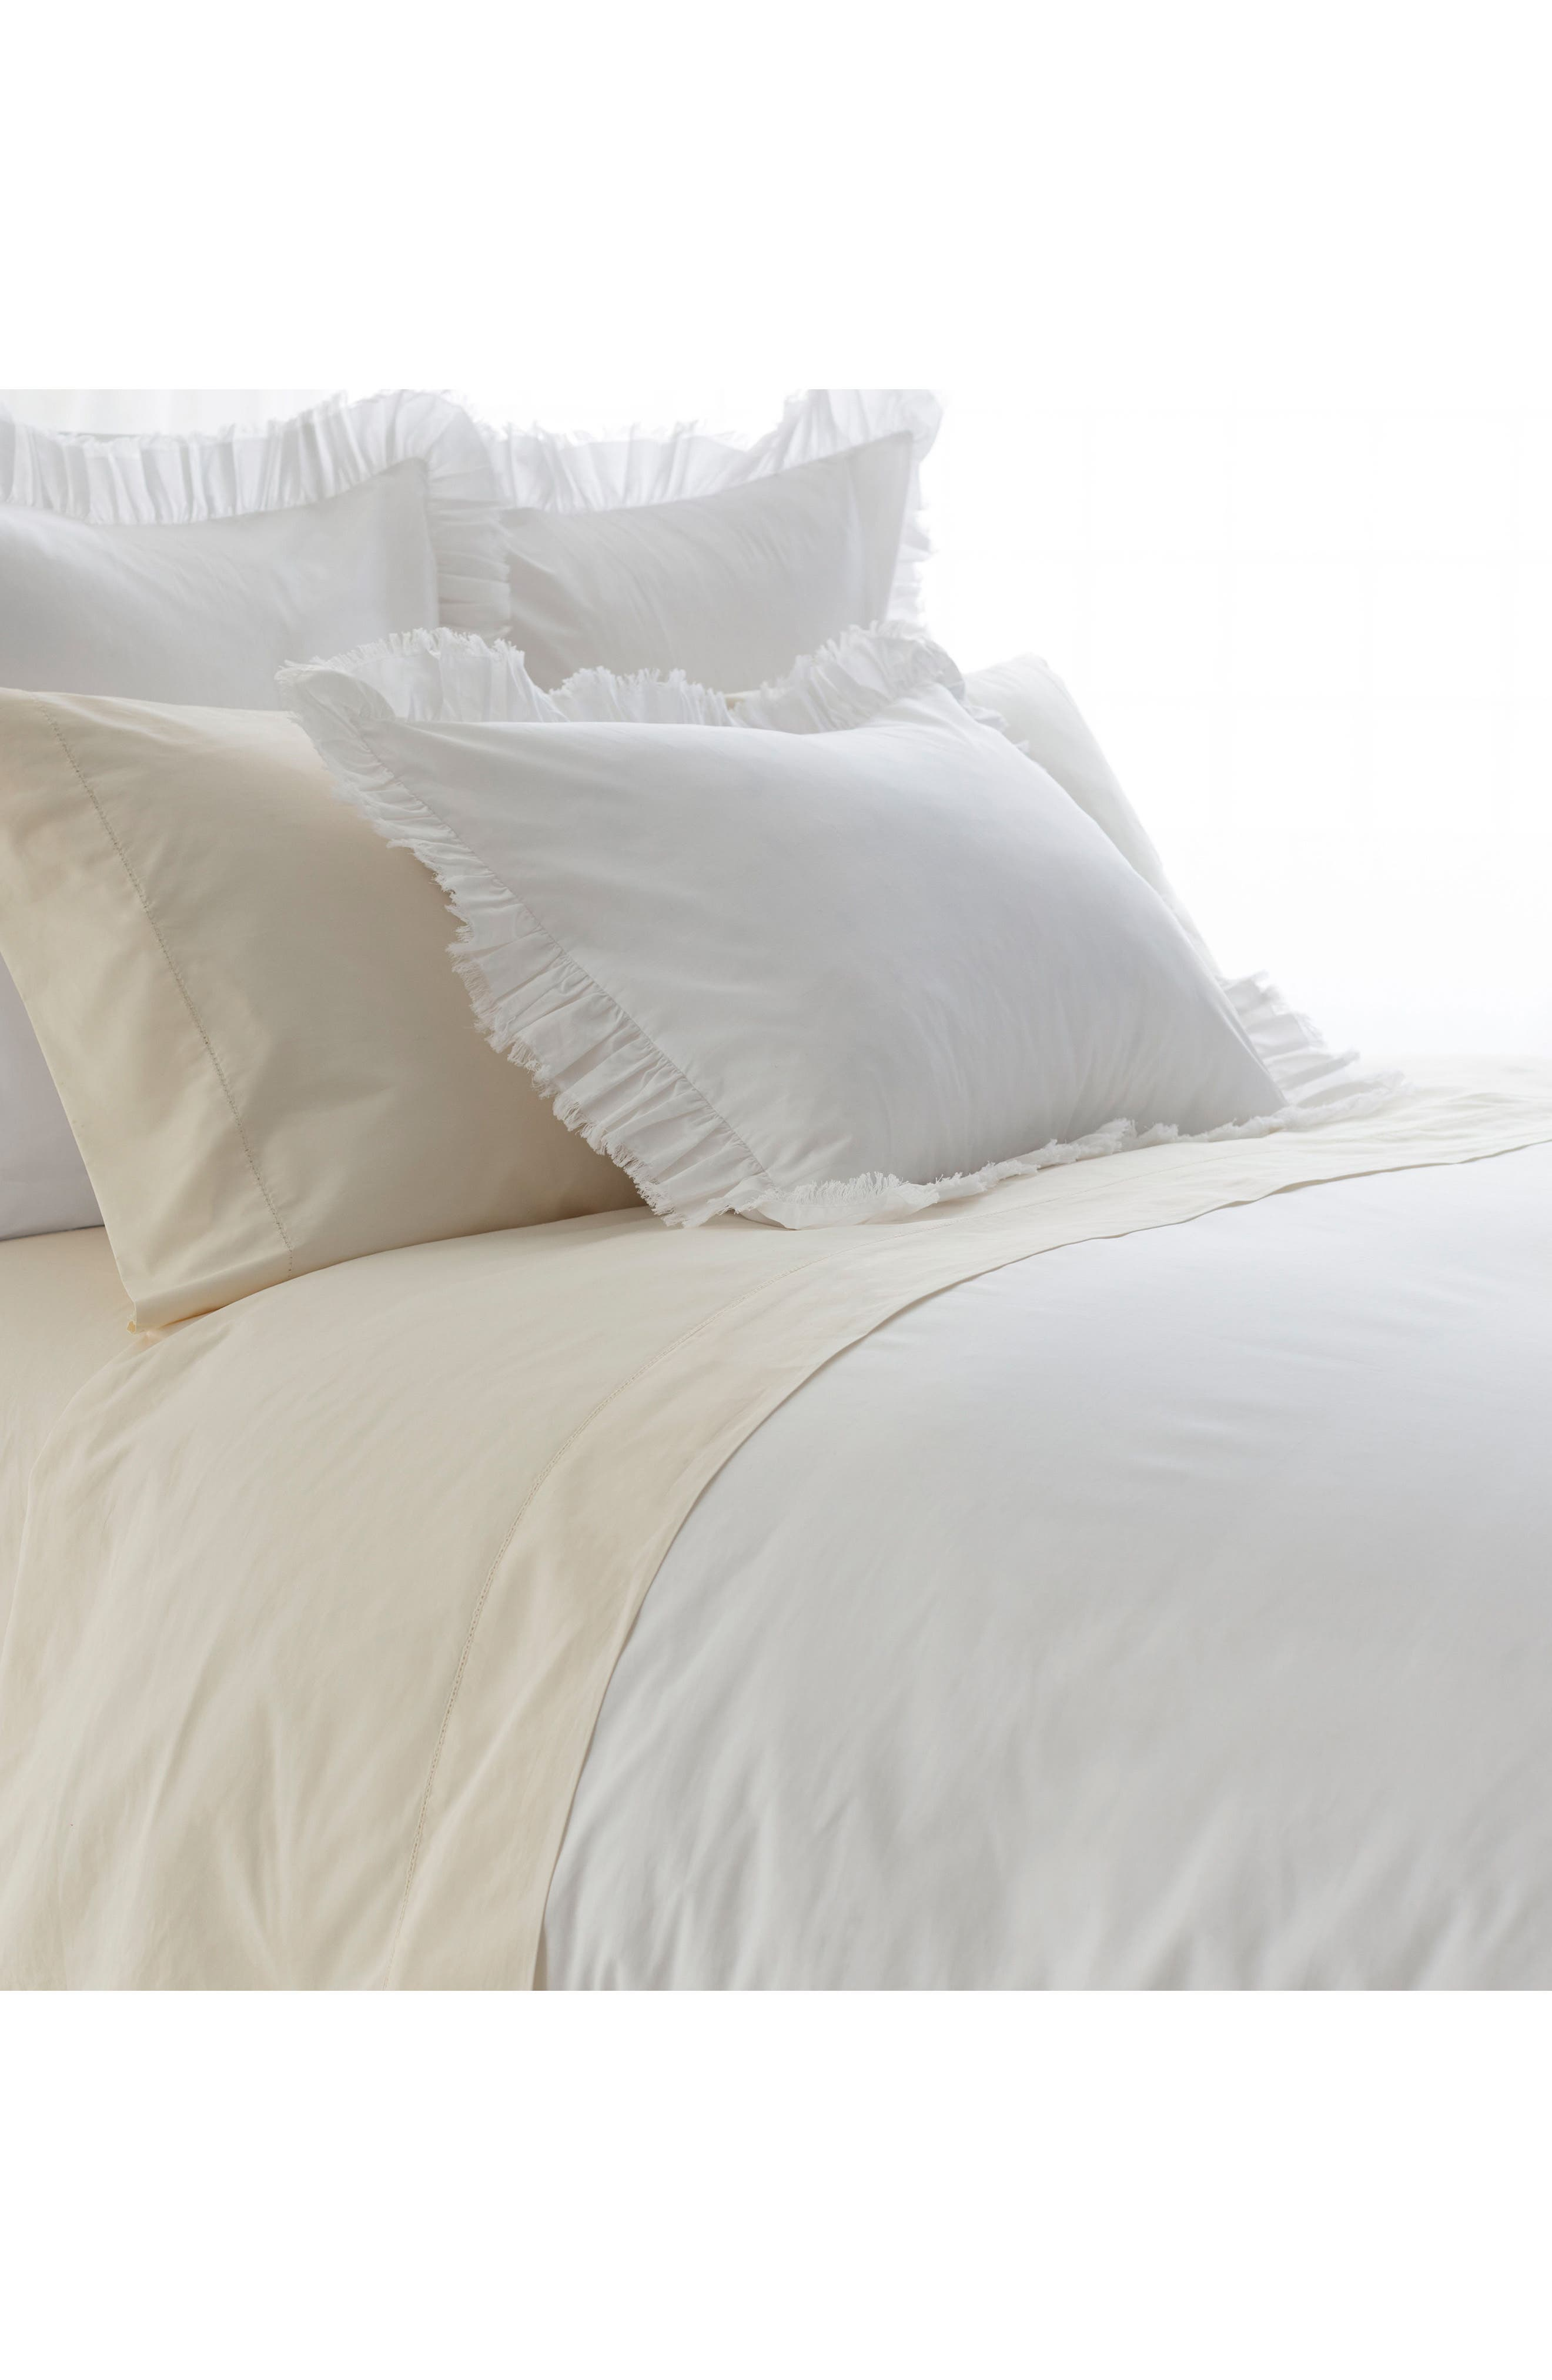 Ruffle Duvet Cover,                         Main,                         color, White